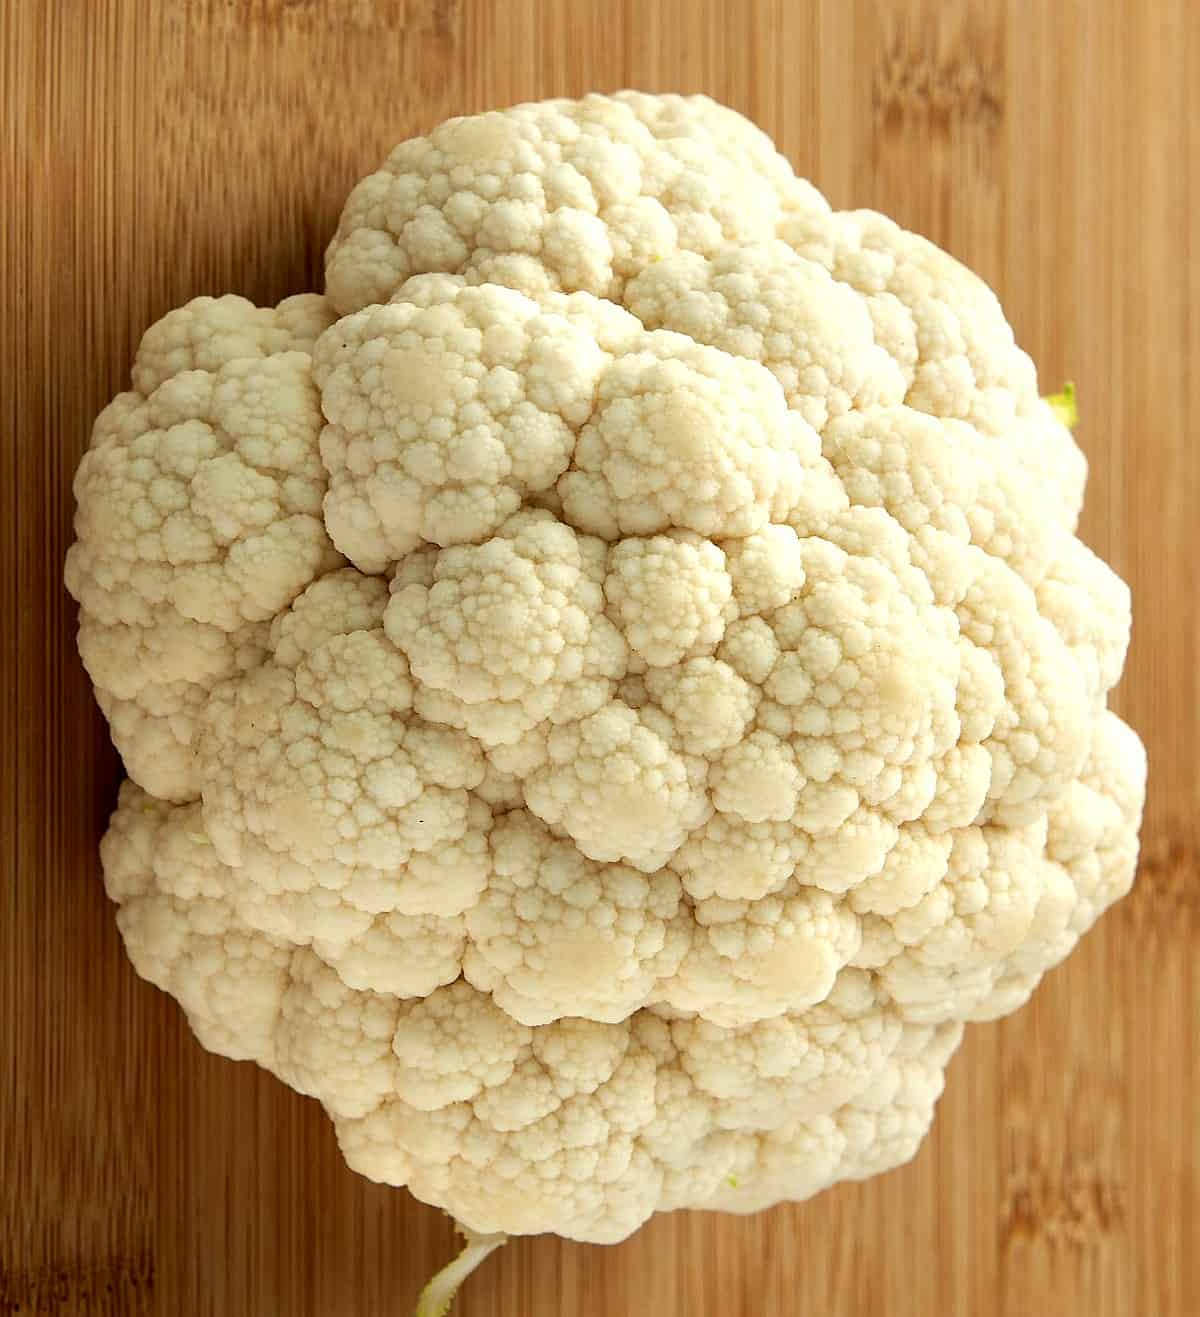 A full head of cauliflower that's been cleaned.